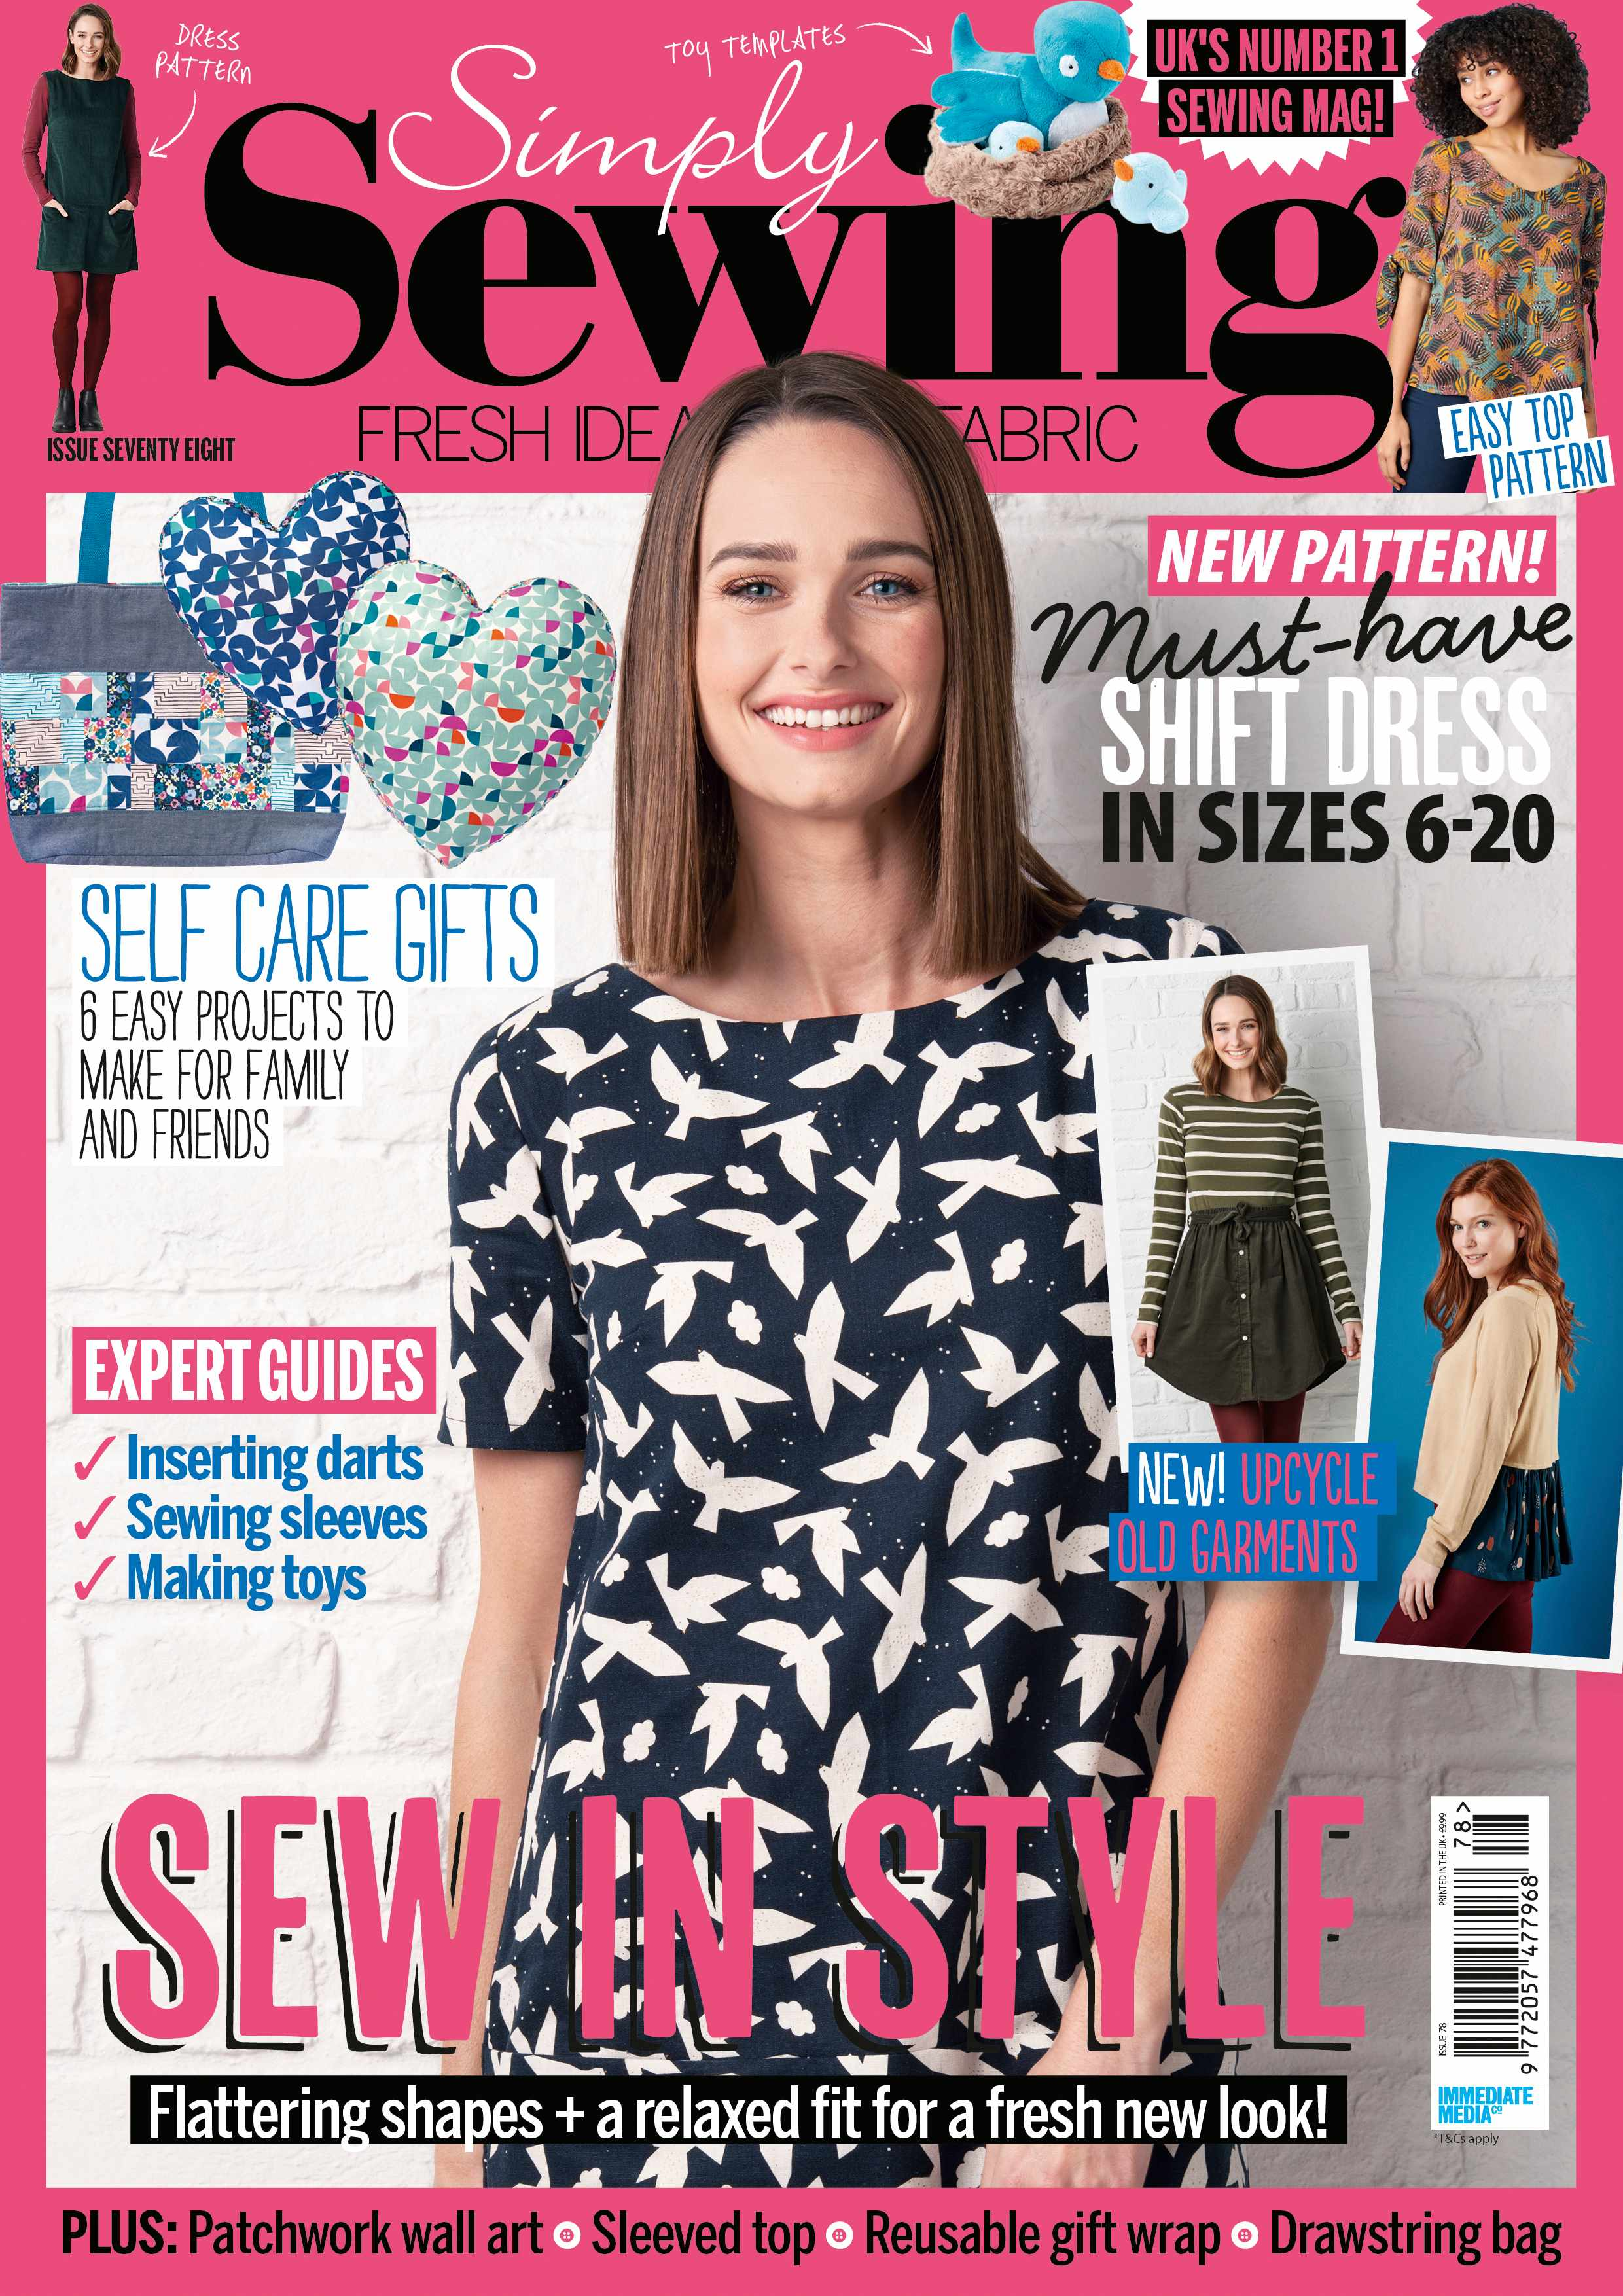 Simply Sewing issue 78